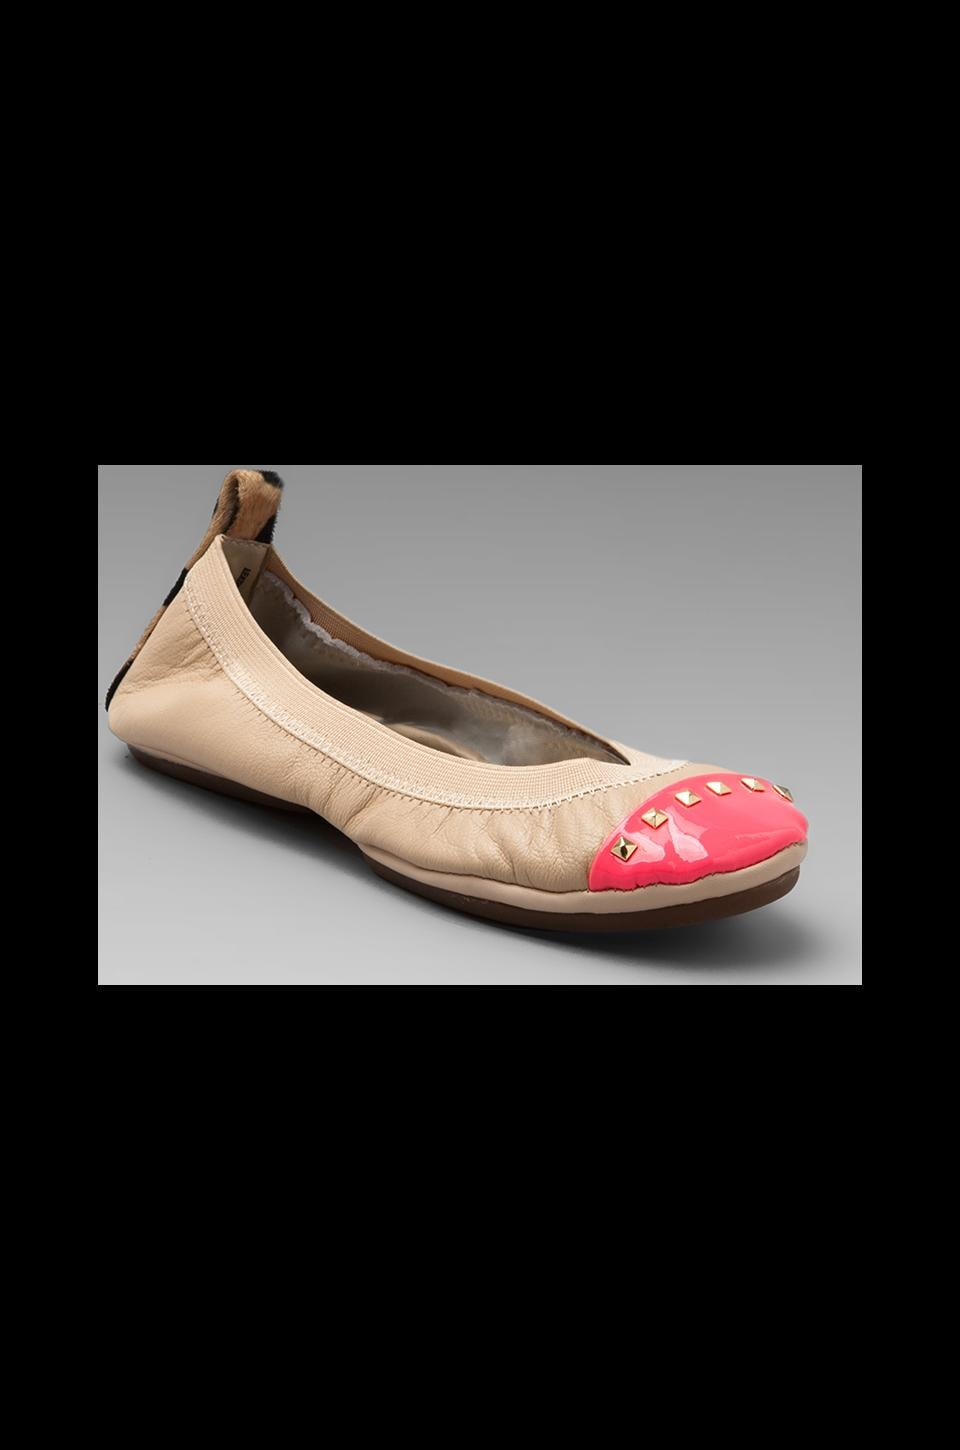 Yosi Samra Leather Flat in Neon Pink/Leopard